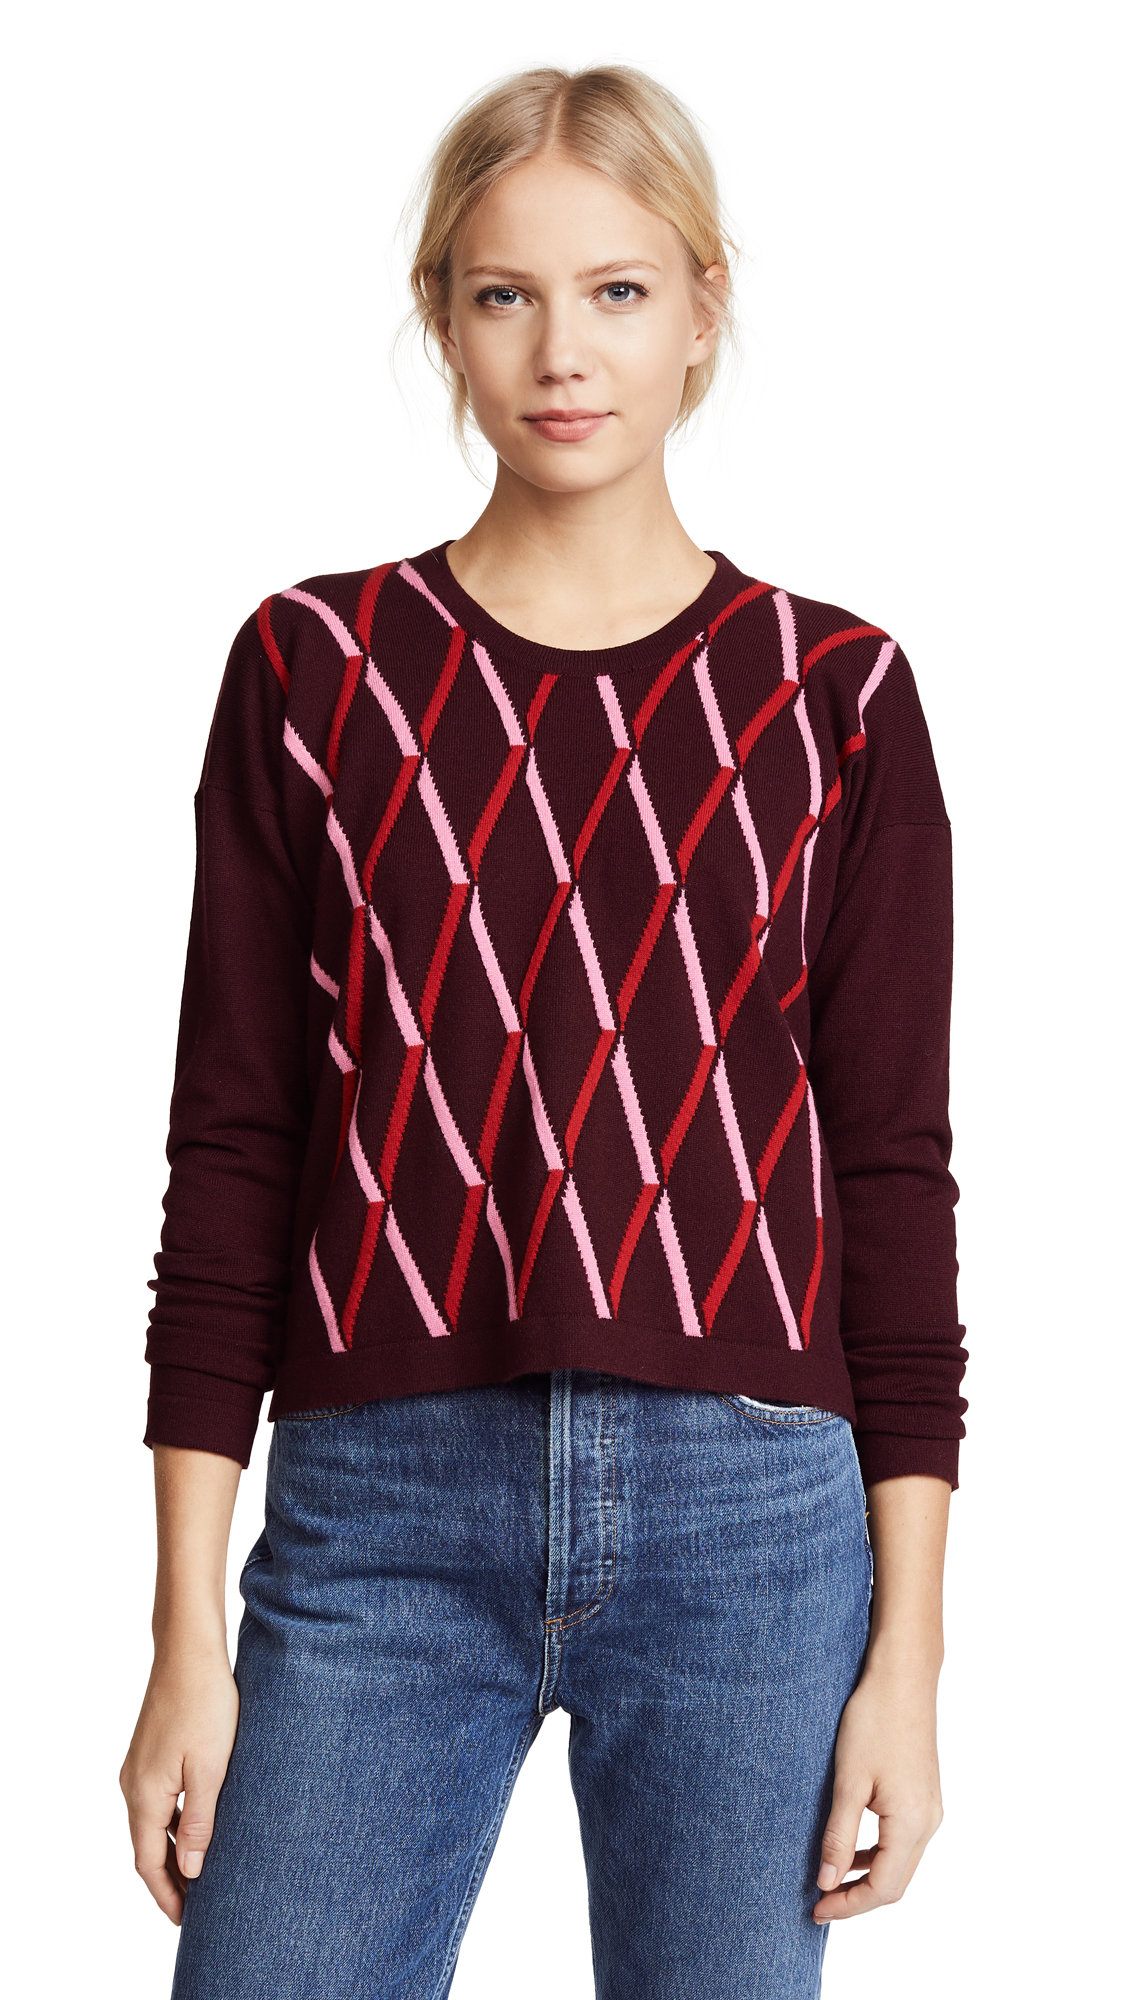 Pringle of Scotland Argyle Cashmere Sweater